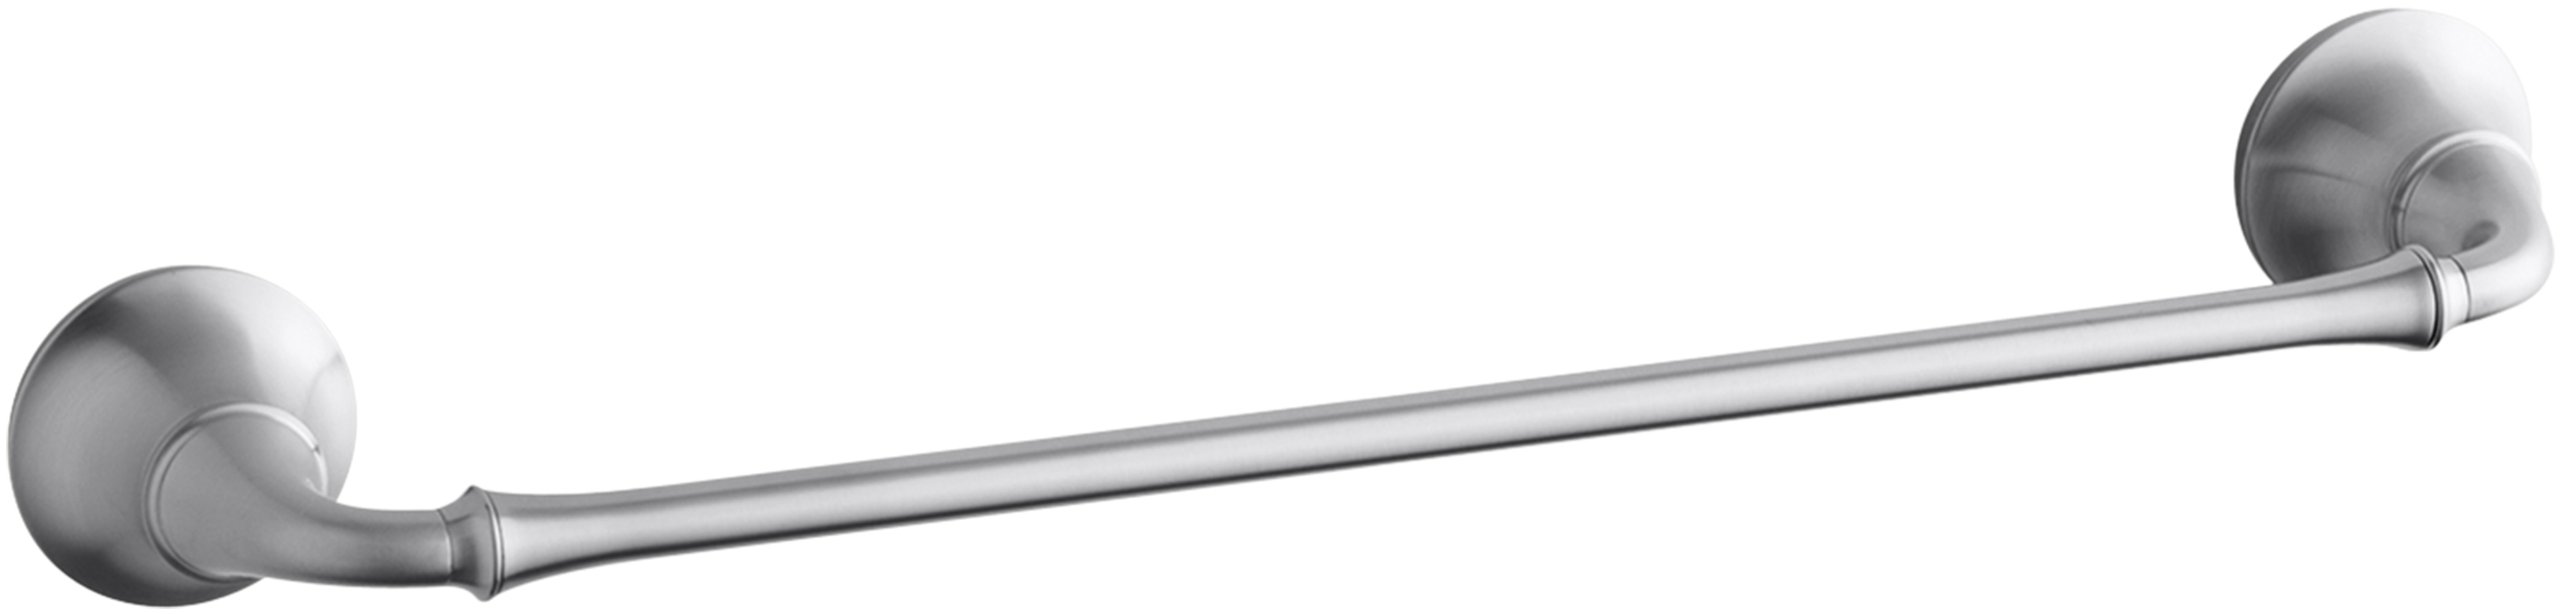 KOHLER K-11270-G Forte Traditional 18-Inch Towel Bar, Brushed Chrome